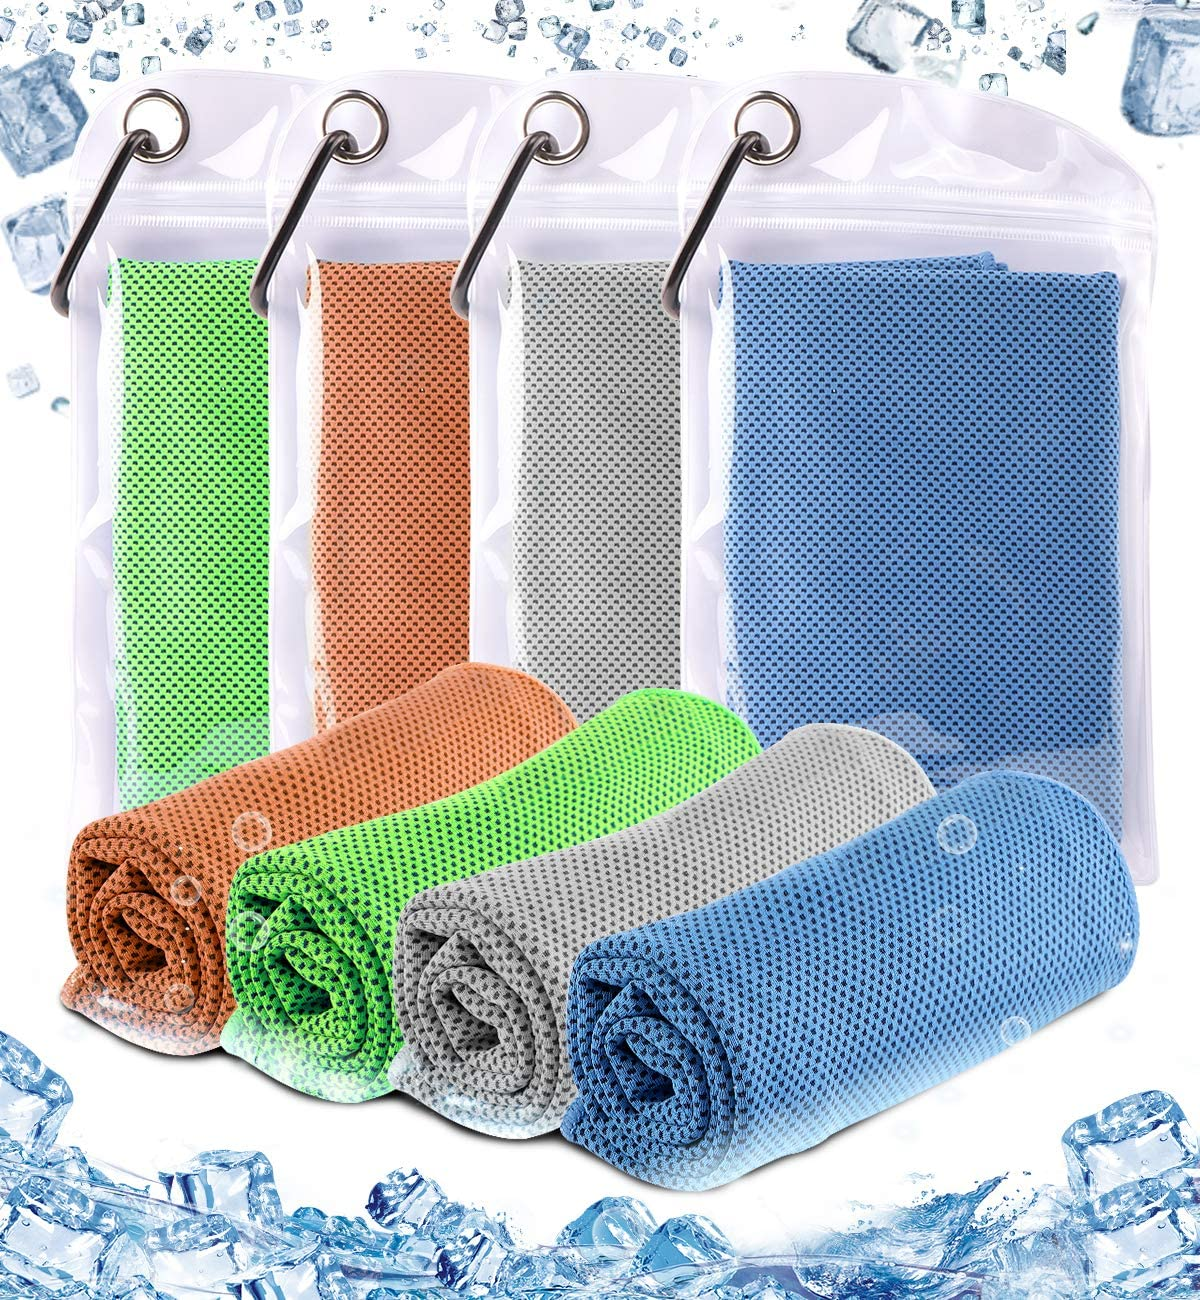 Cooling Towel - Chilly Microfiber Towel Ice Neck Wrap for Athletes Workout Sport Yoga Fast Dry 4 Pack